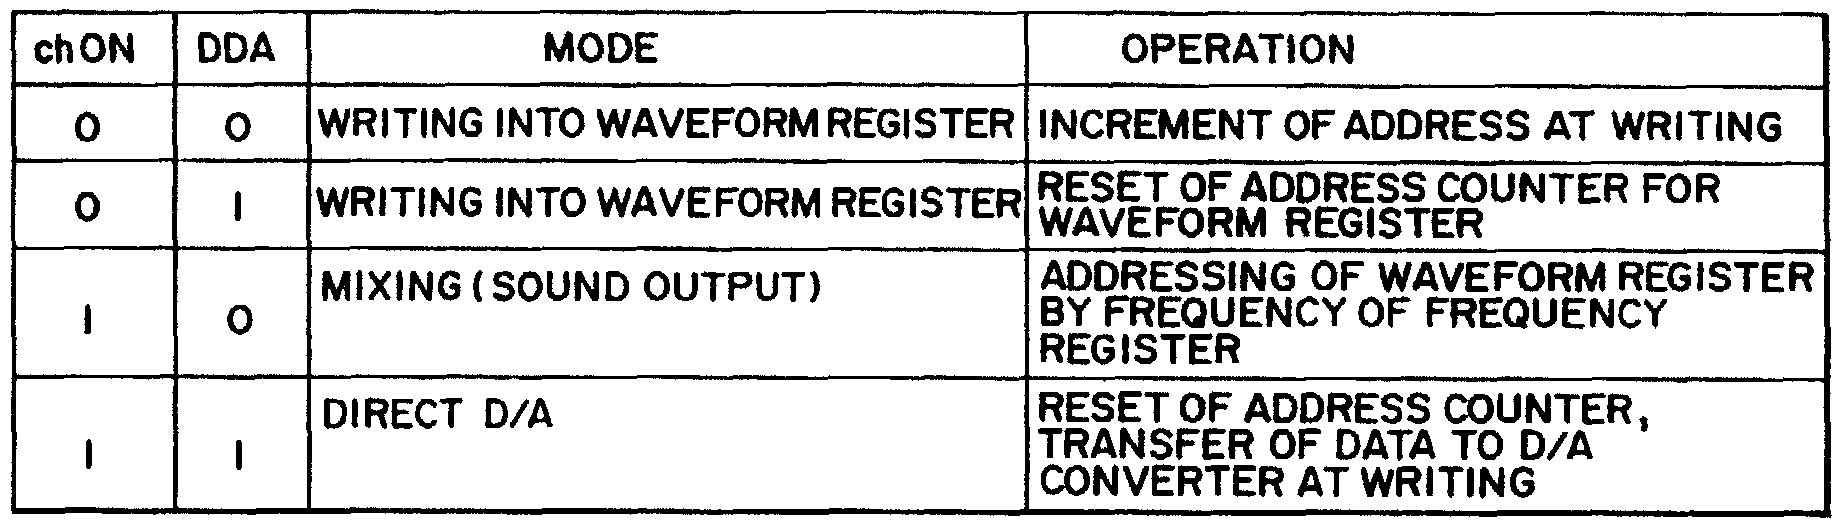 US4924744-fig4.png